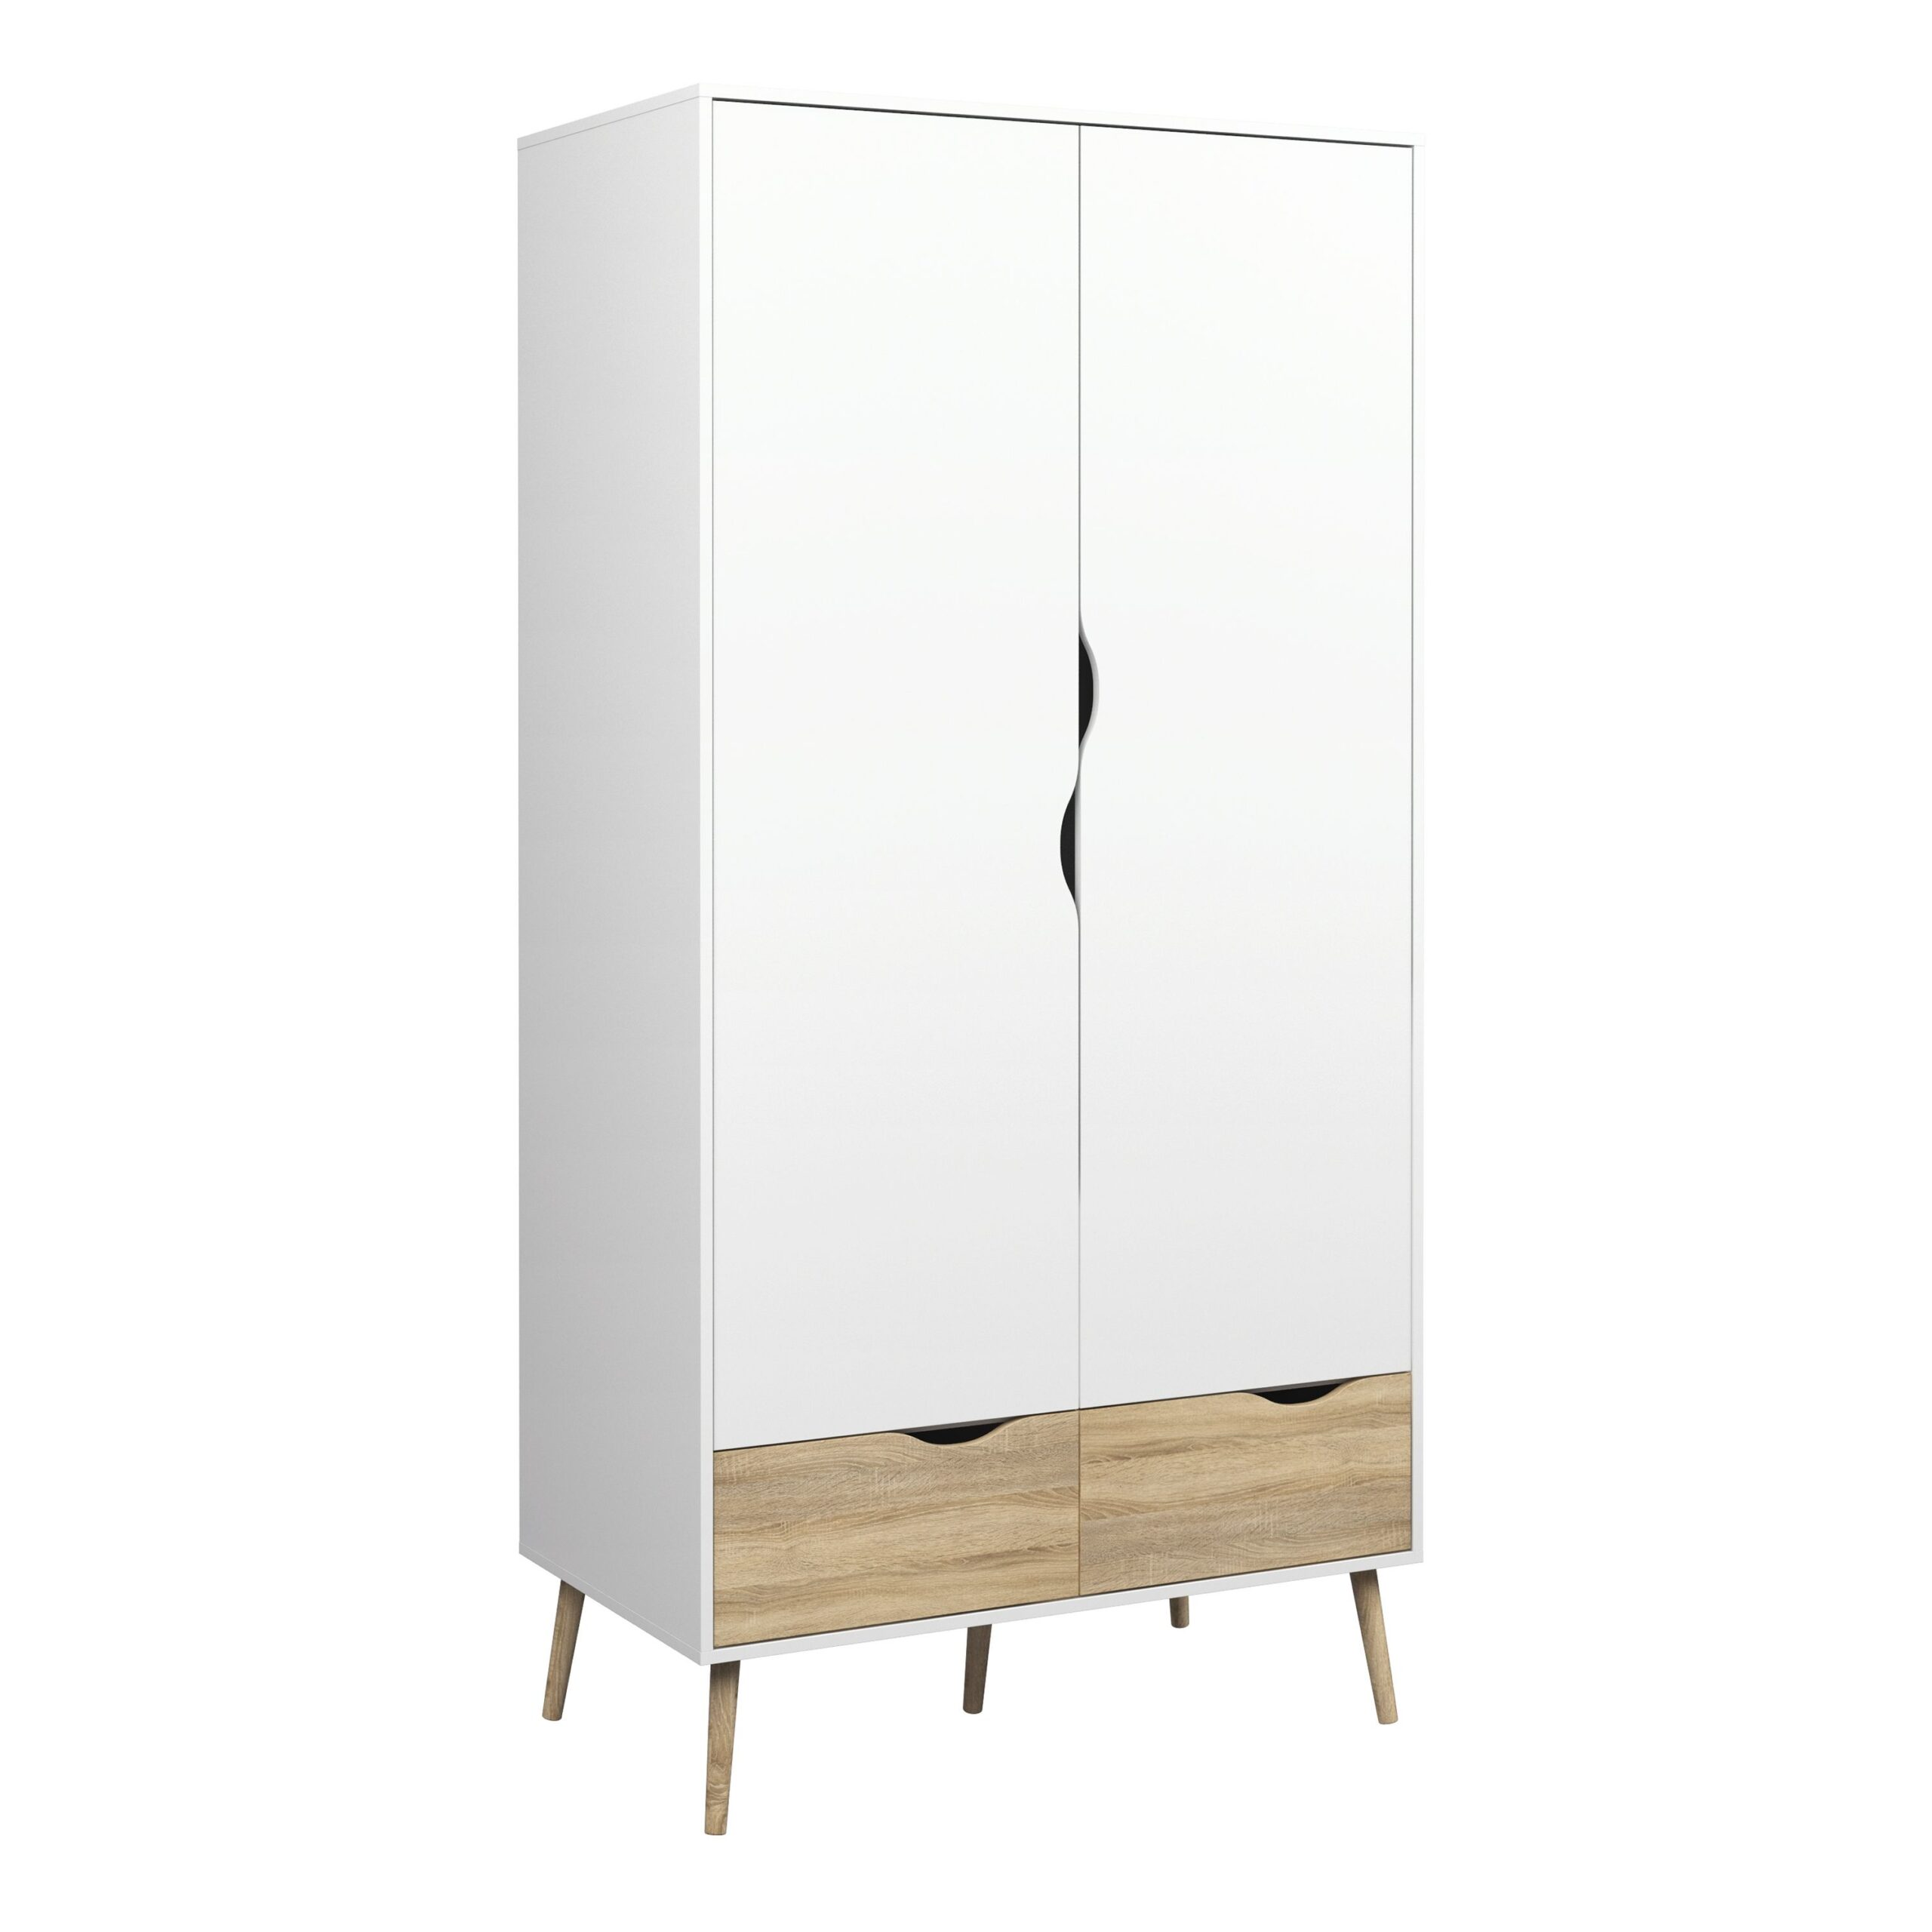 Solo Wardrobe 2 Doors 2 Drawers in White and Oak